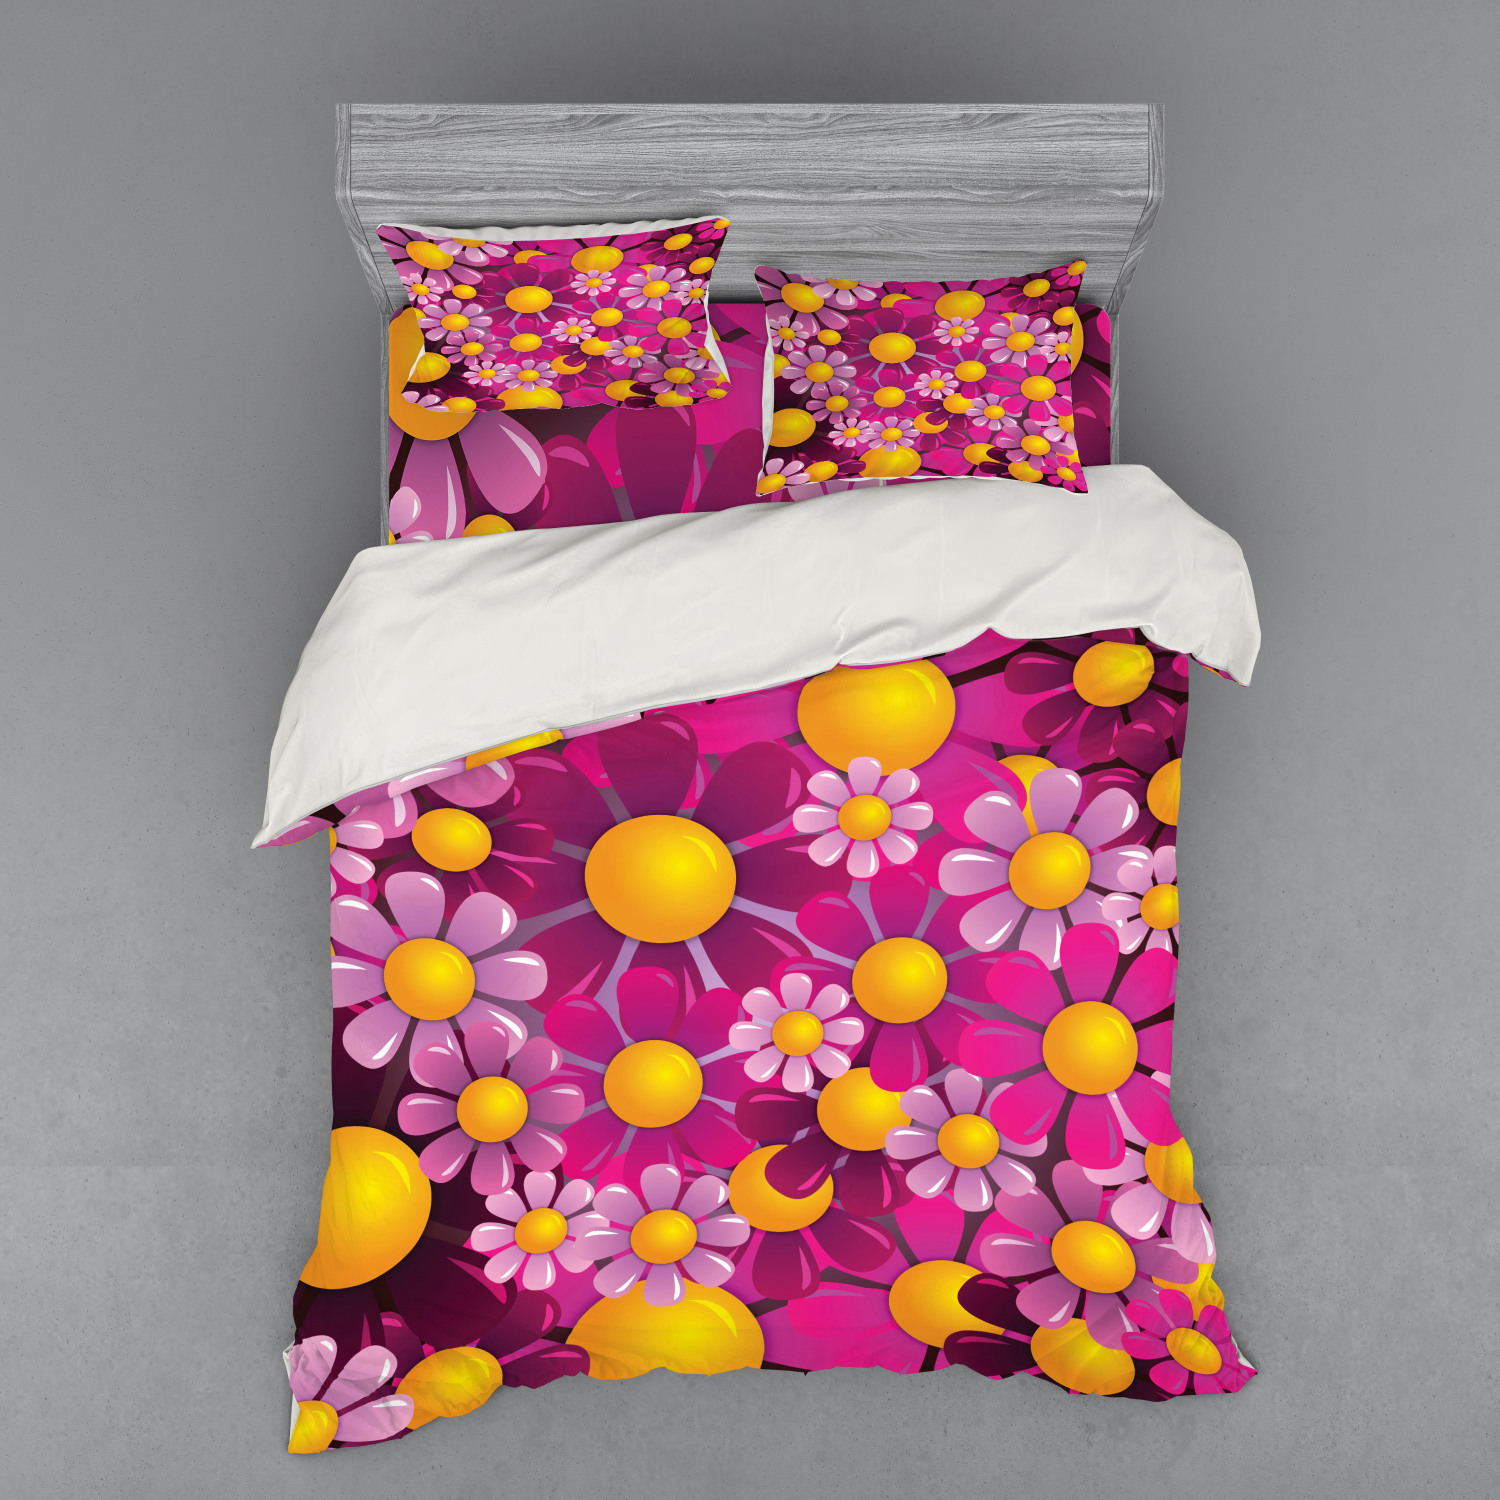 thumbnail 78 - Ambesonne Summer Bedding Set Duvet Cover Sham Fitted Sheet in 3 Sizes